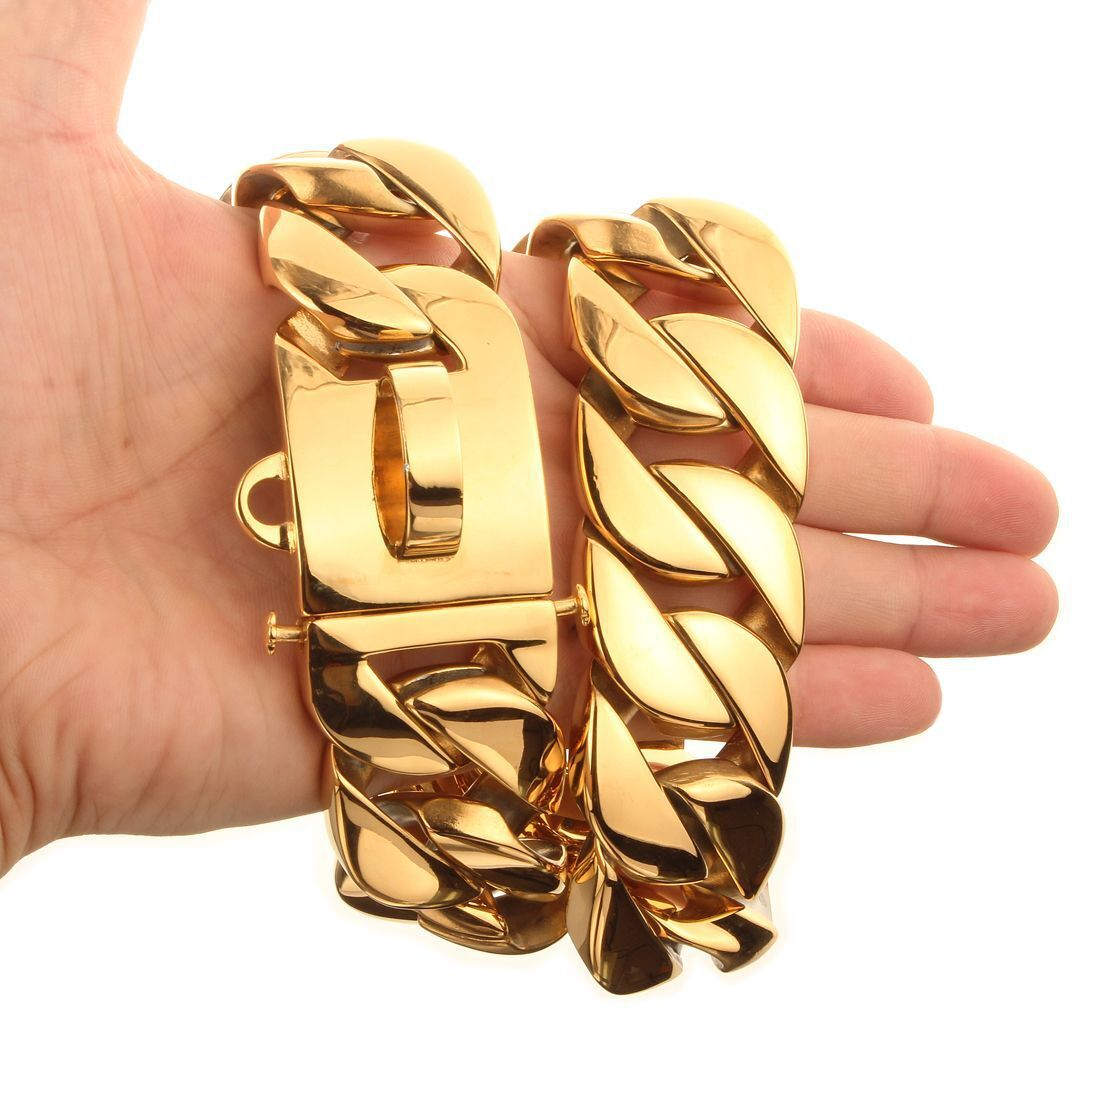 32mm Daikin Chain In Large Pet Dog Chain Necklace Neck Ring 24k Gold Stainless Steel